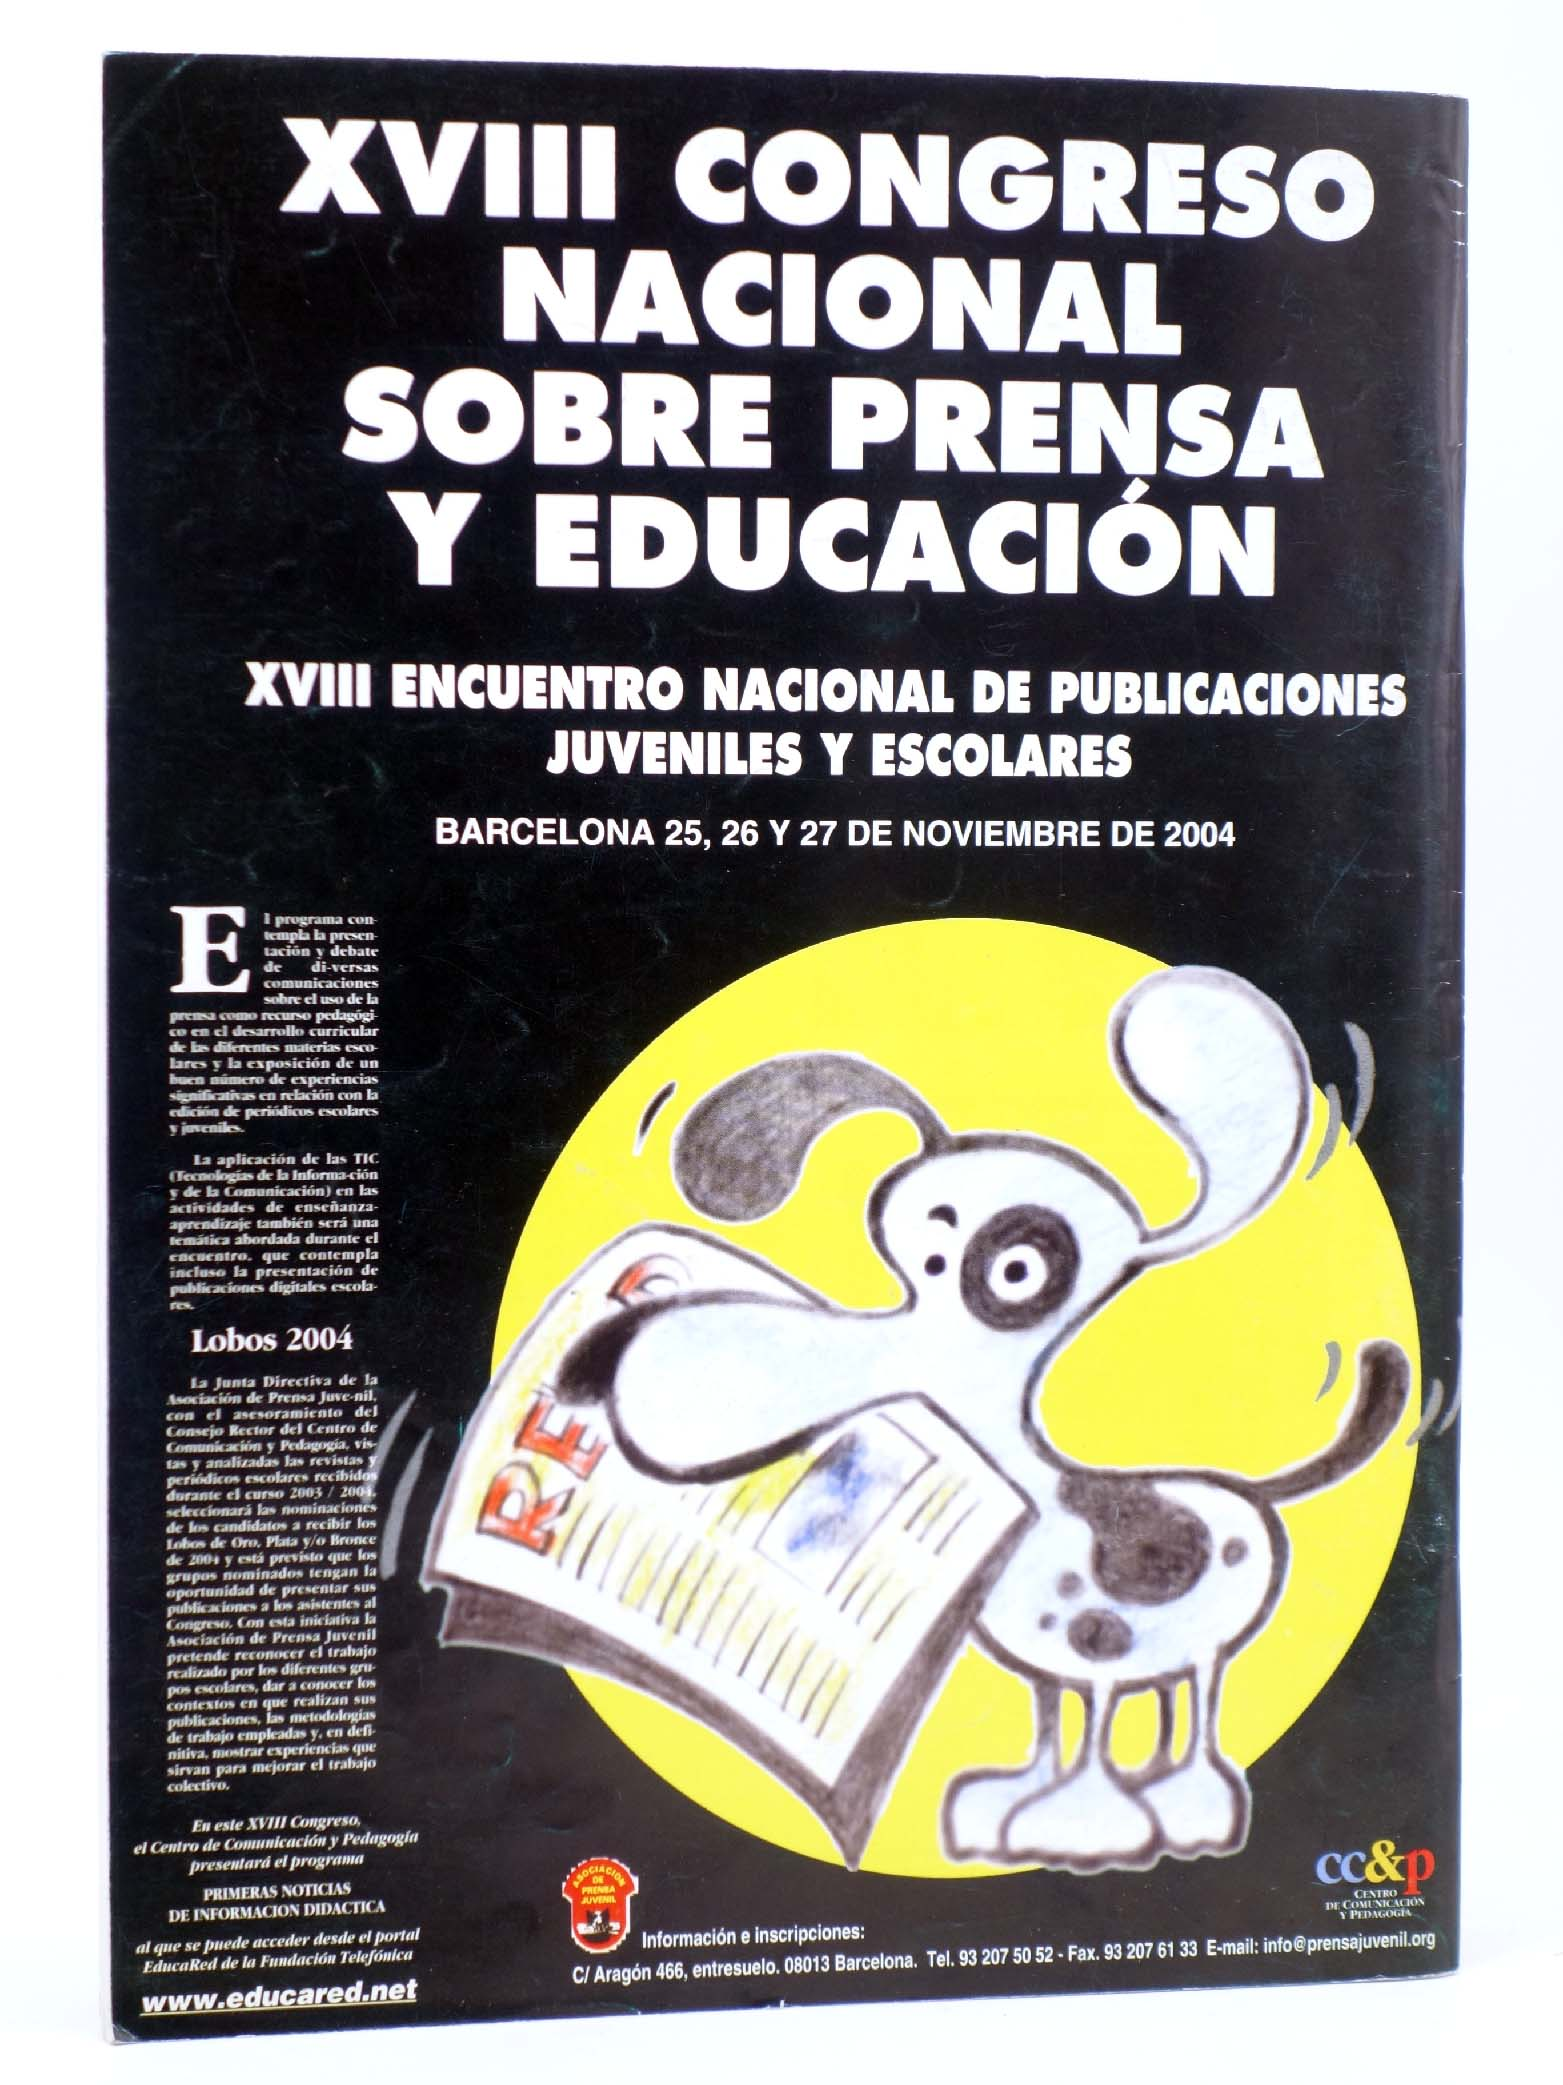 REVISTA MAKING OF, CUADERNOS DE CINE Y EDUCACIÓN 26